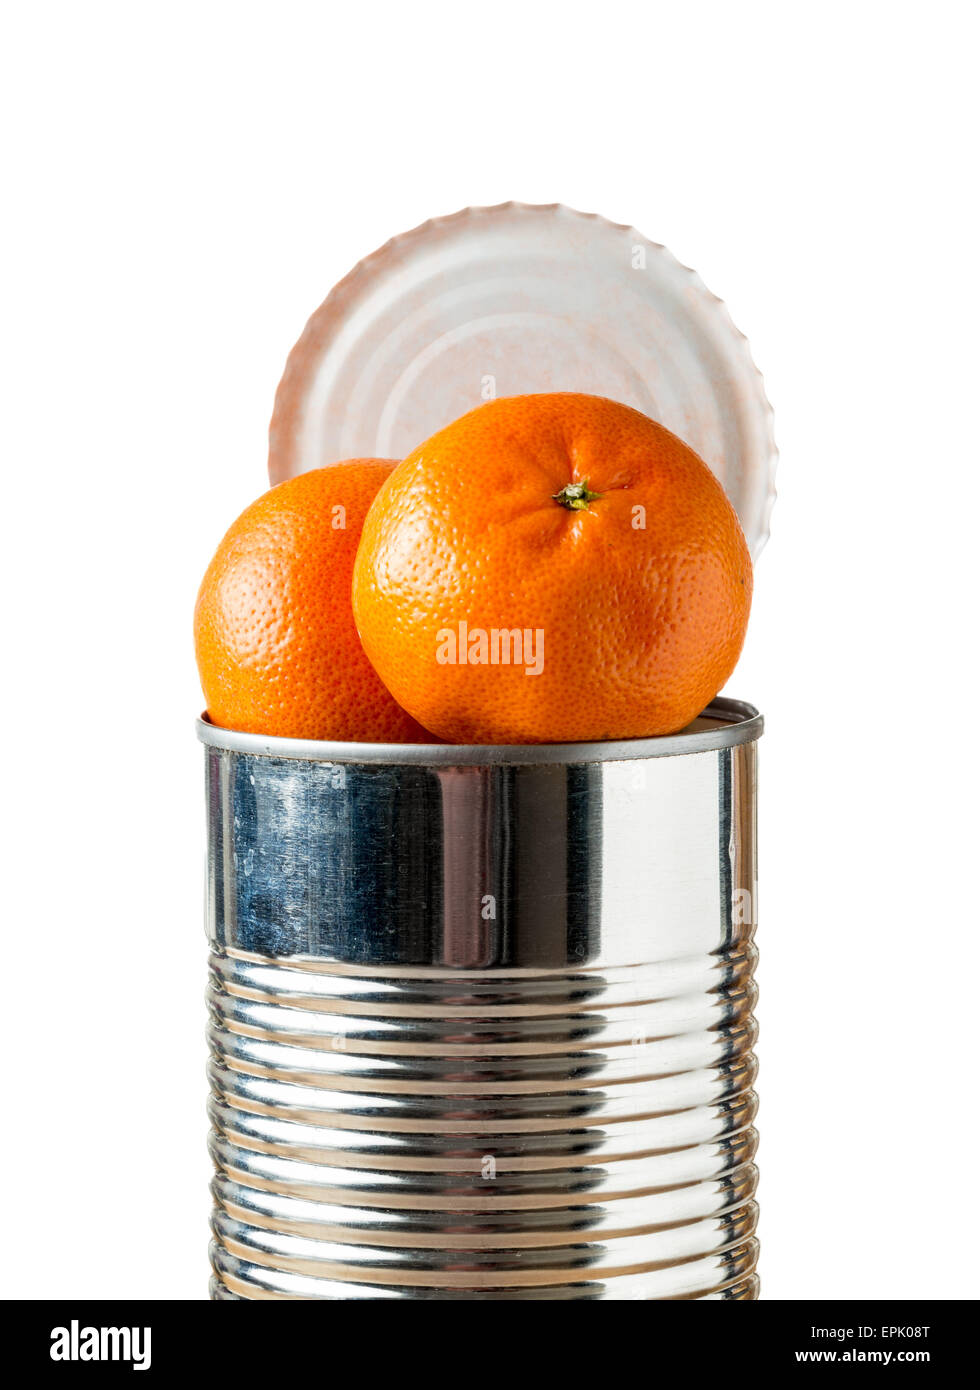 Oranges bursting out of tin can - Stock Image